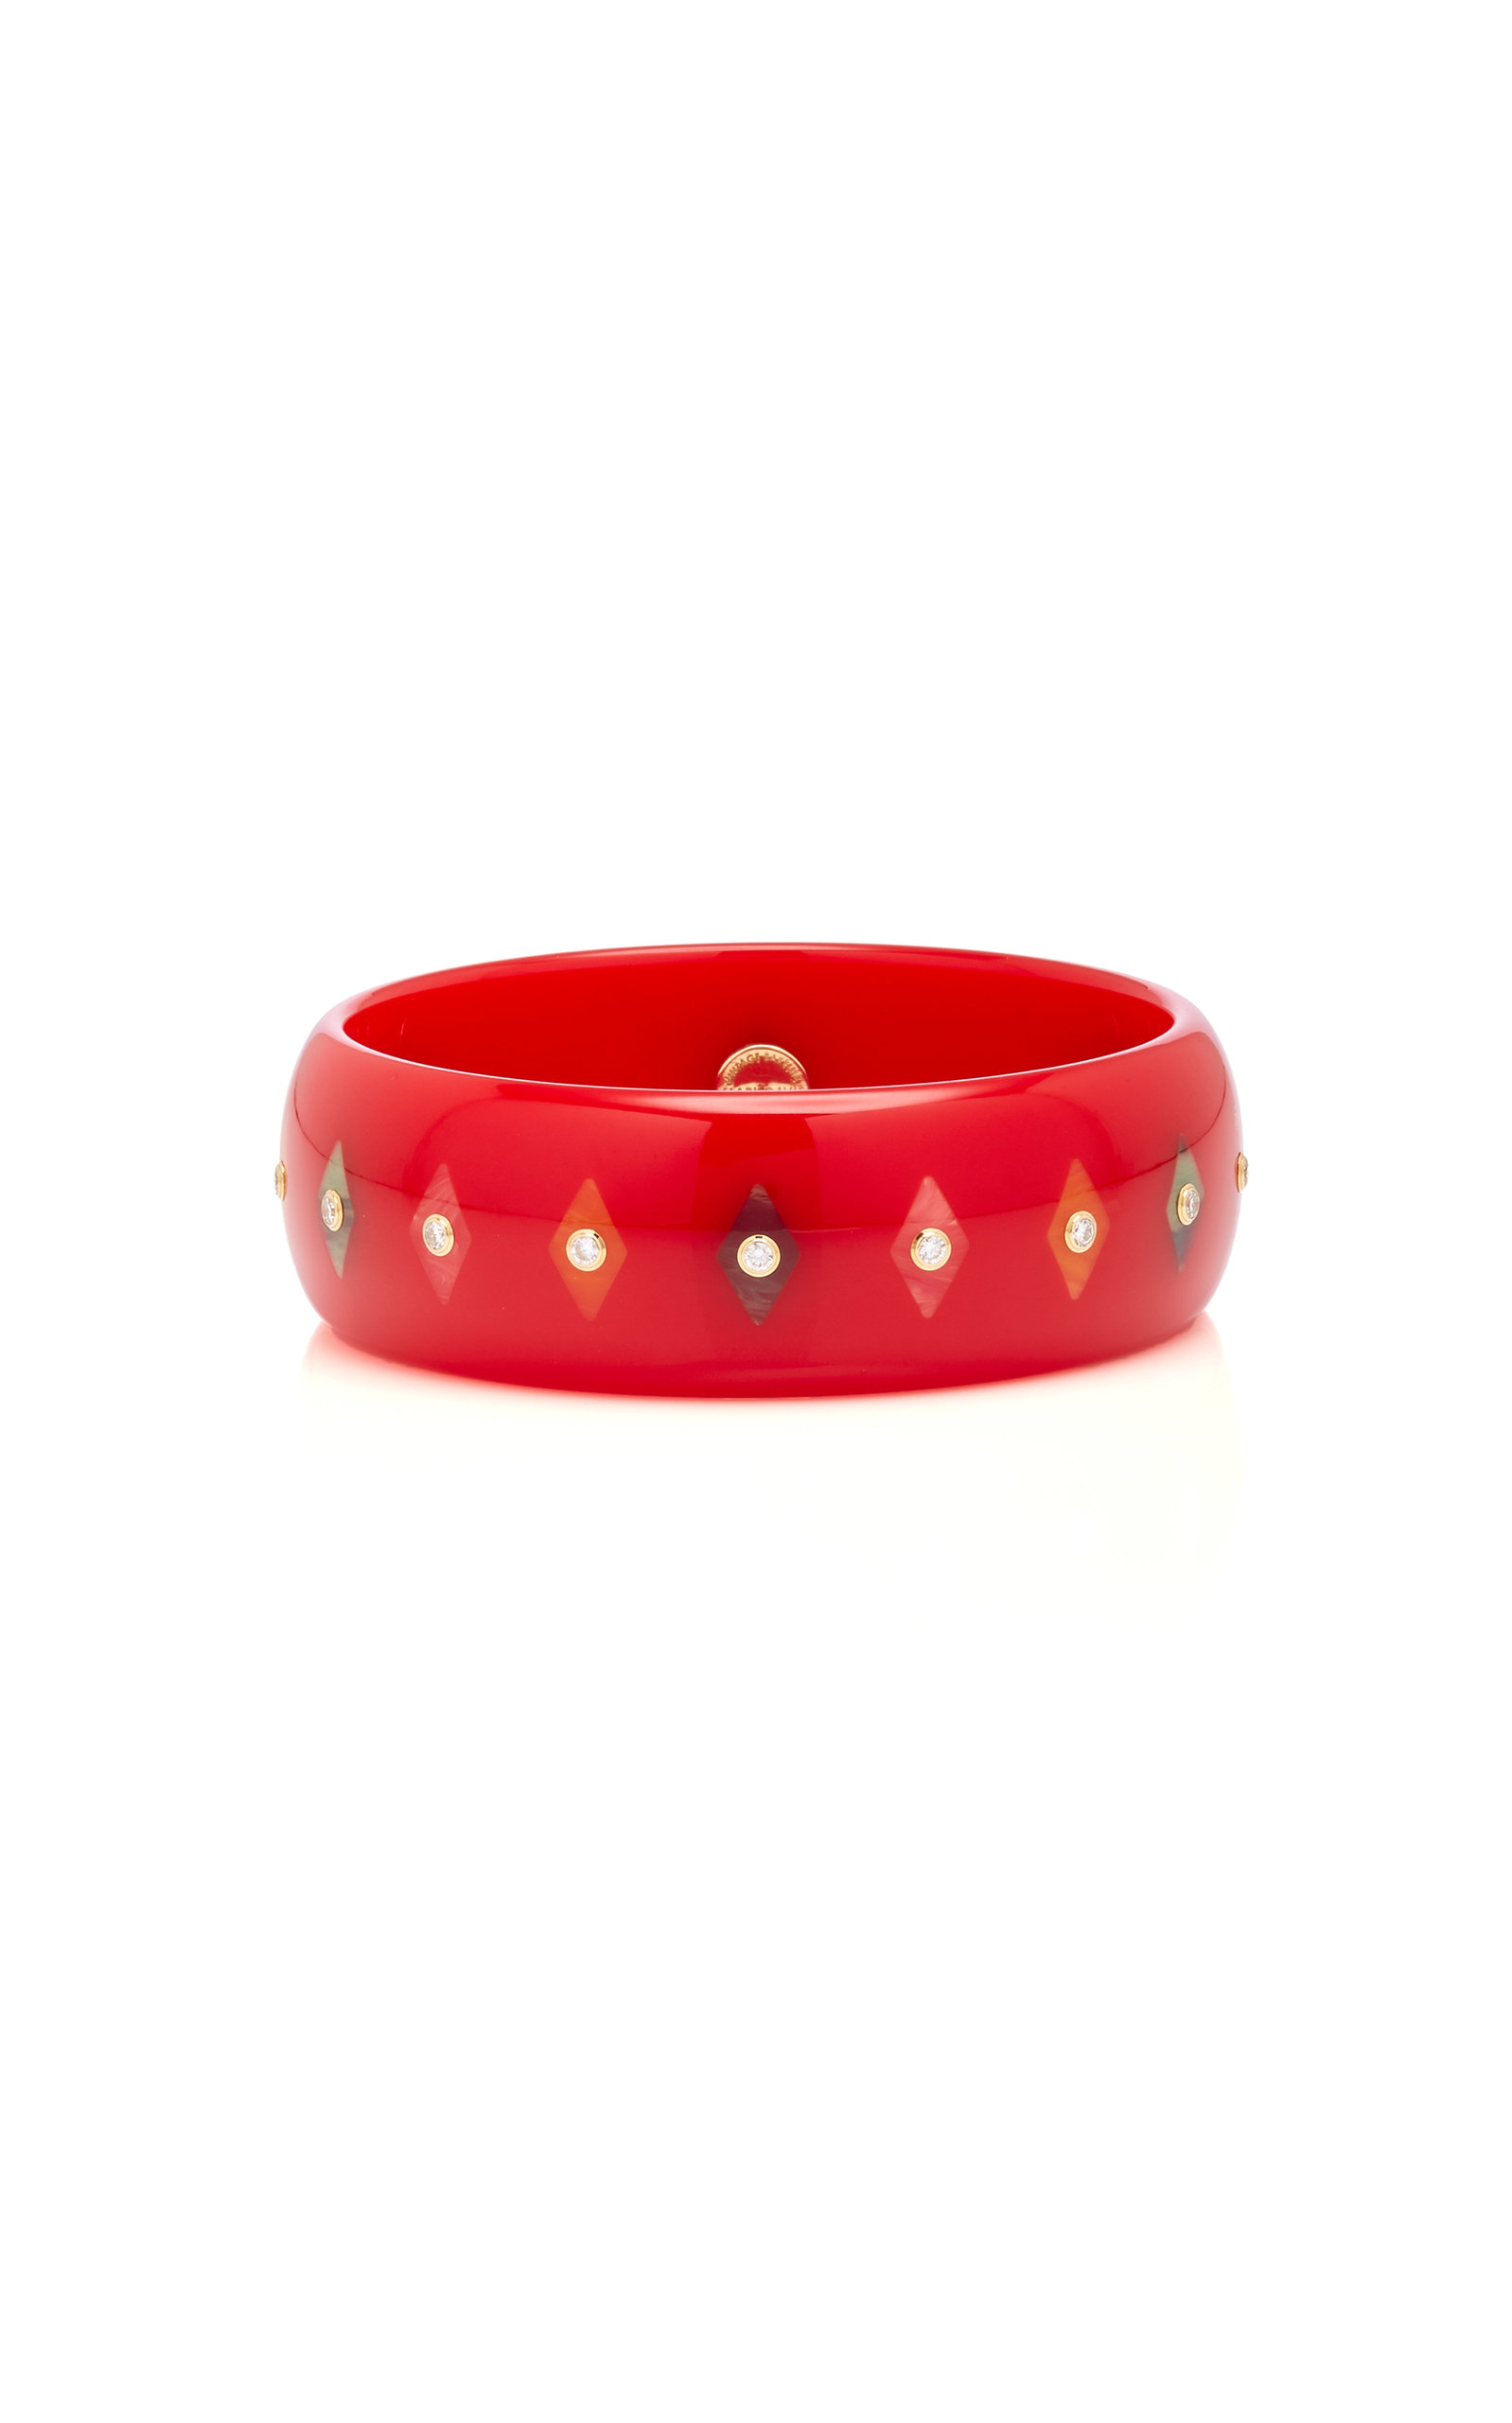 MARK DAVIS M'O EXCLUSIVE: ONE-OF-A-KIND RED PERSEPHONE BRACELET